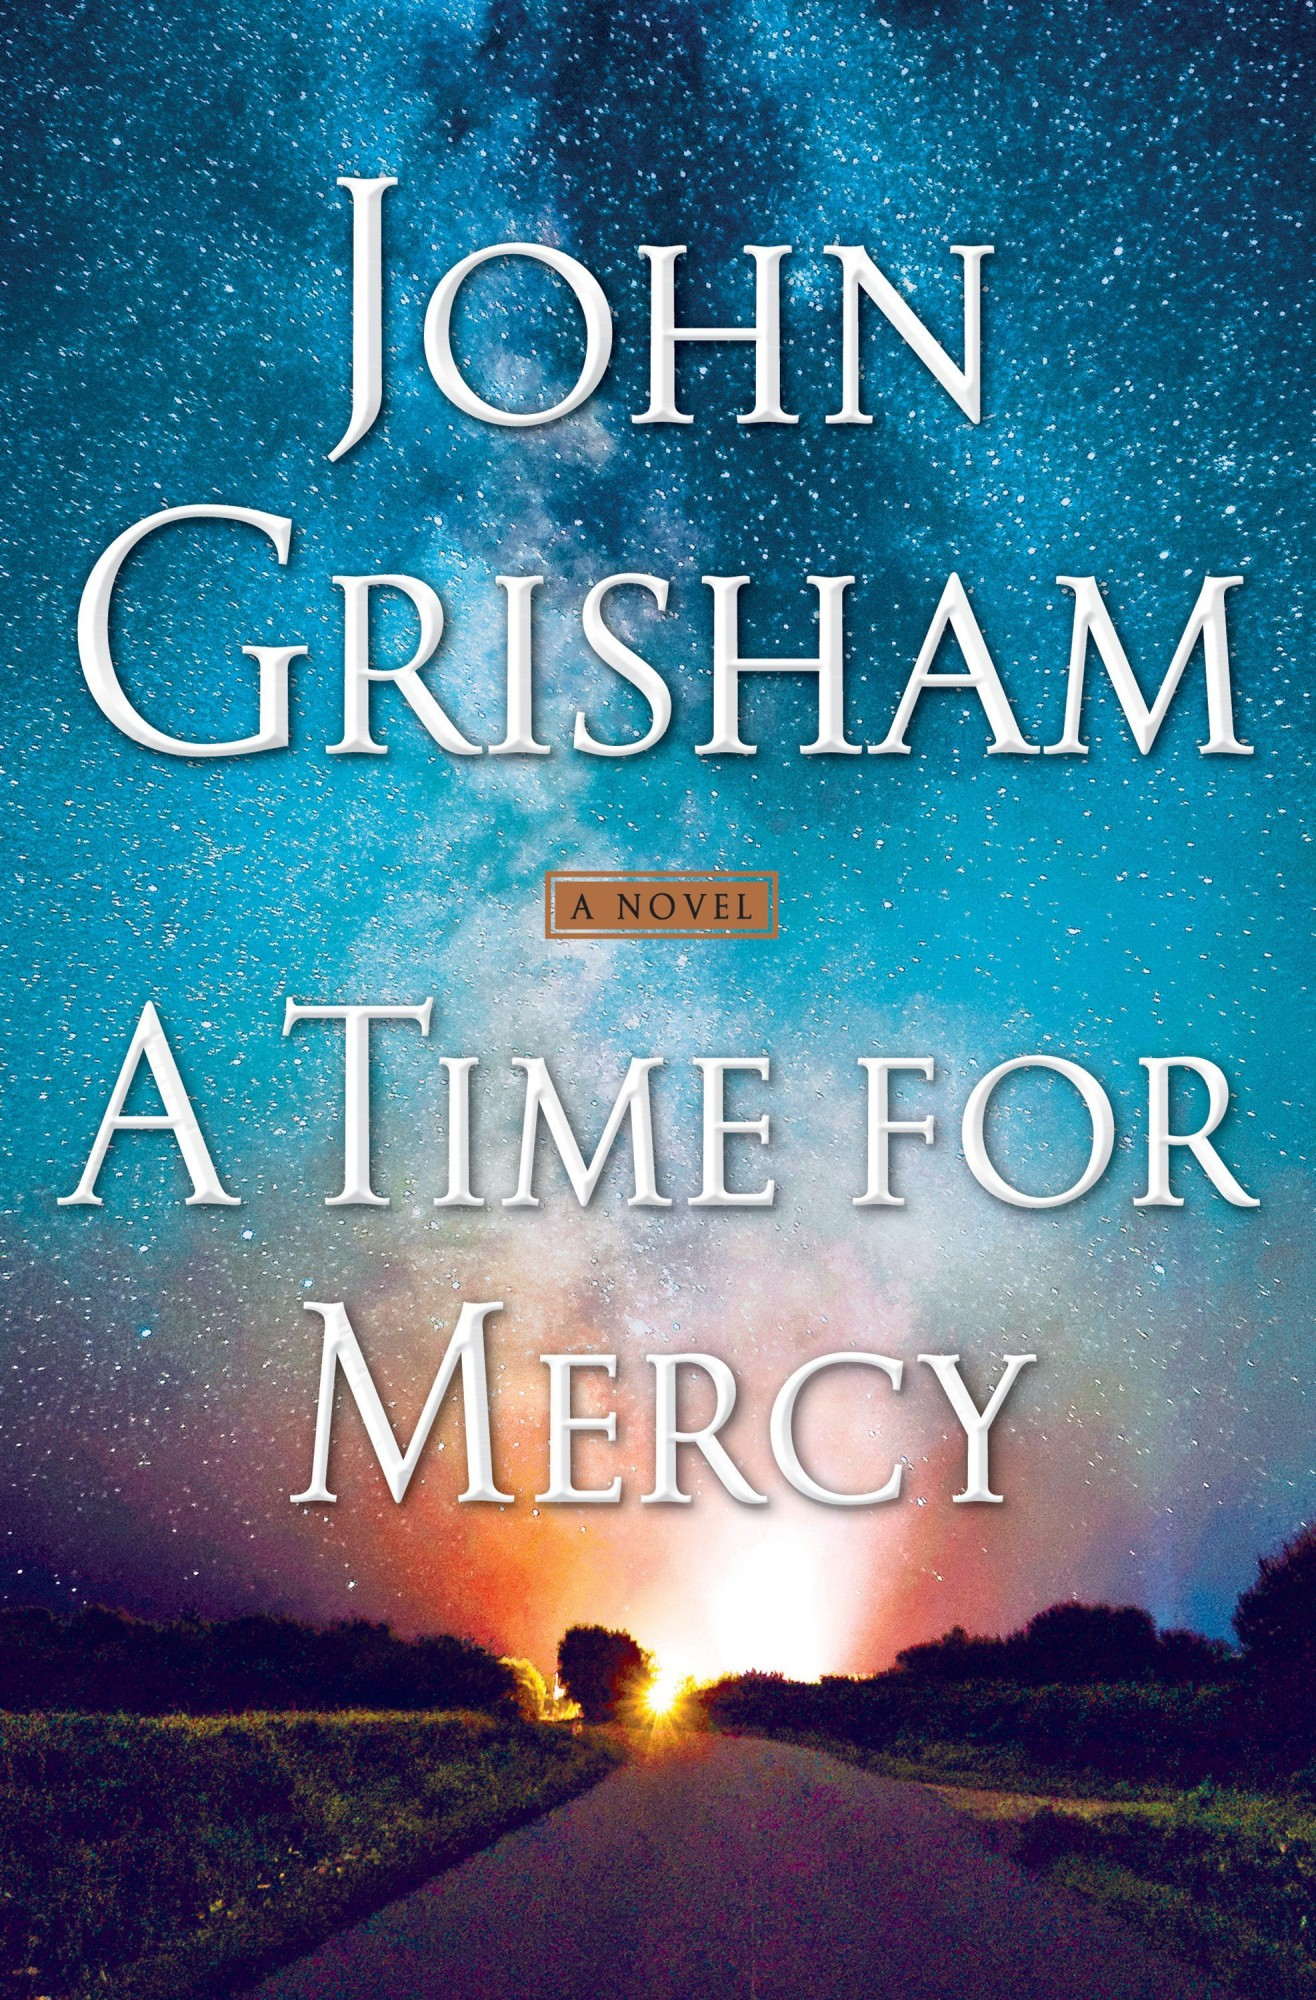 City of Darwin - Book - A Time For Mercy